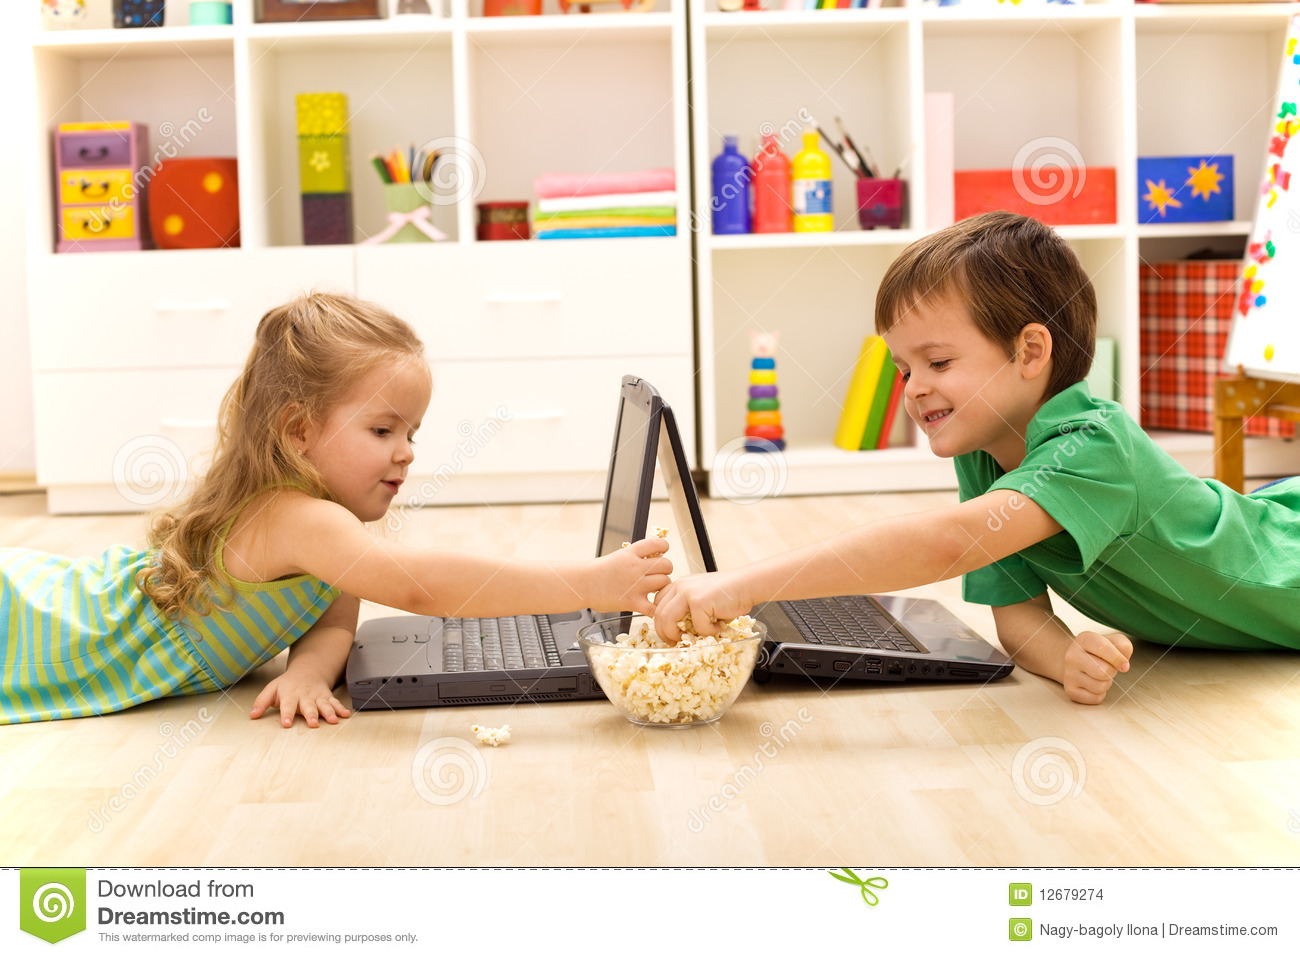 Kids with laptops eating popcorn